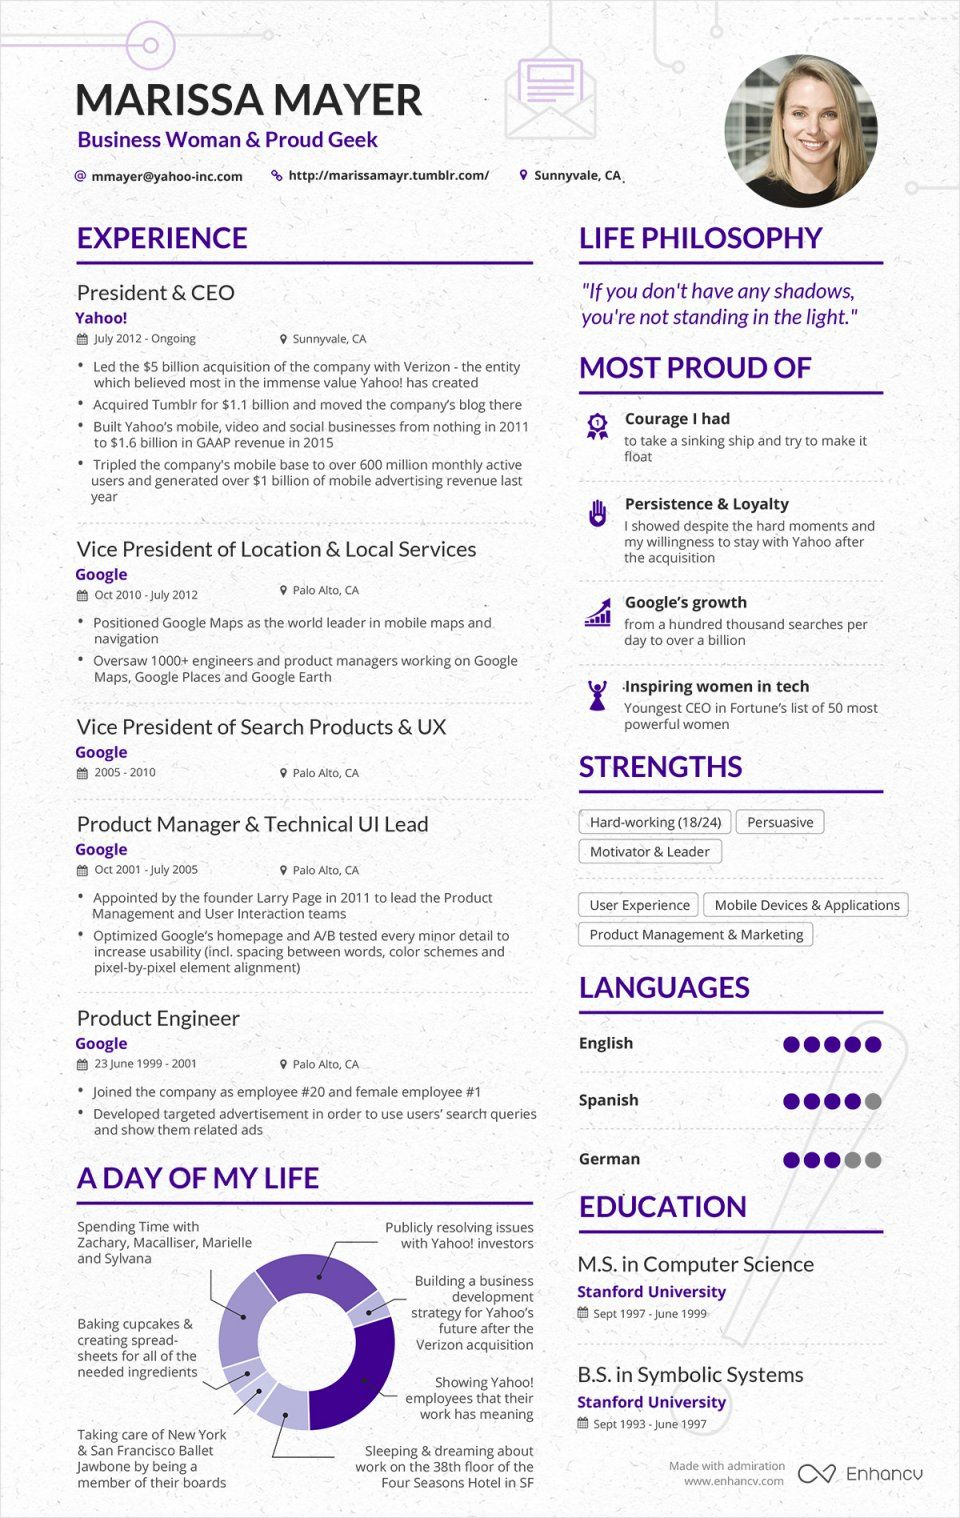 Academic Resume Template Here's A Résumé For Marissa Mayer Would You Hire Her  Career